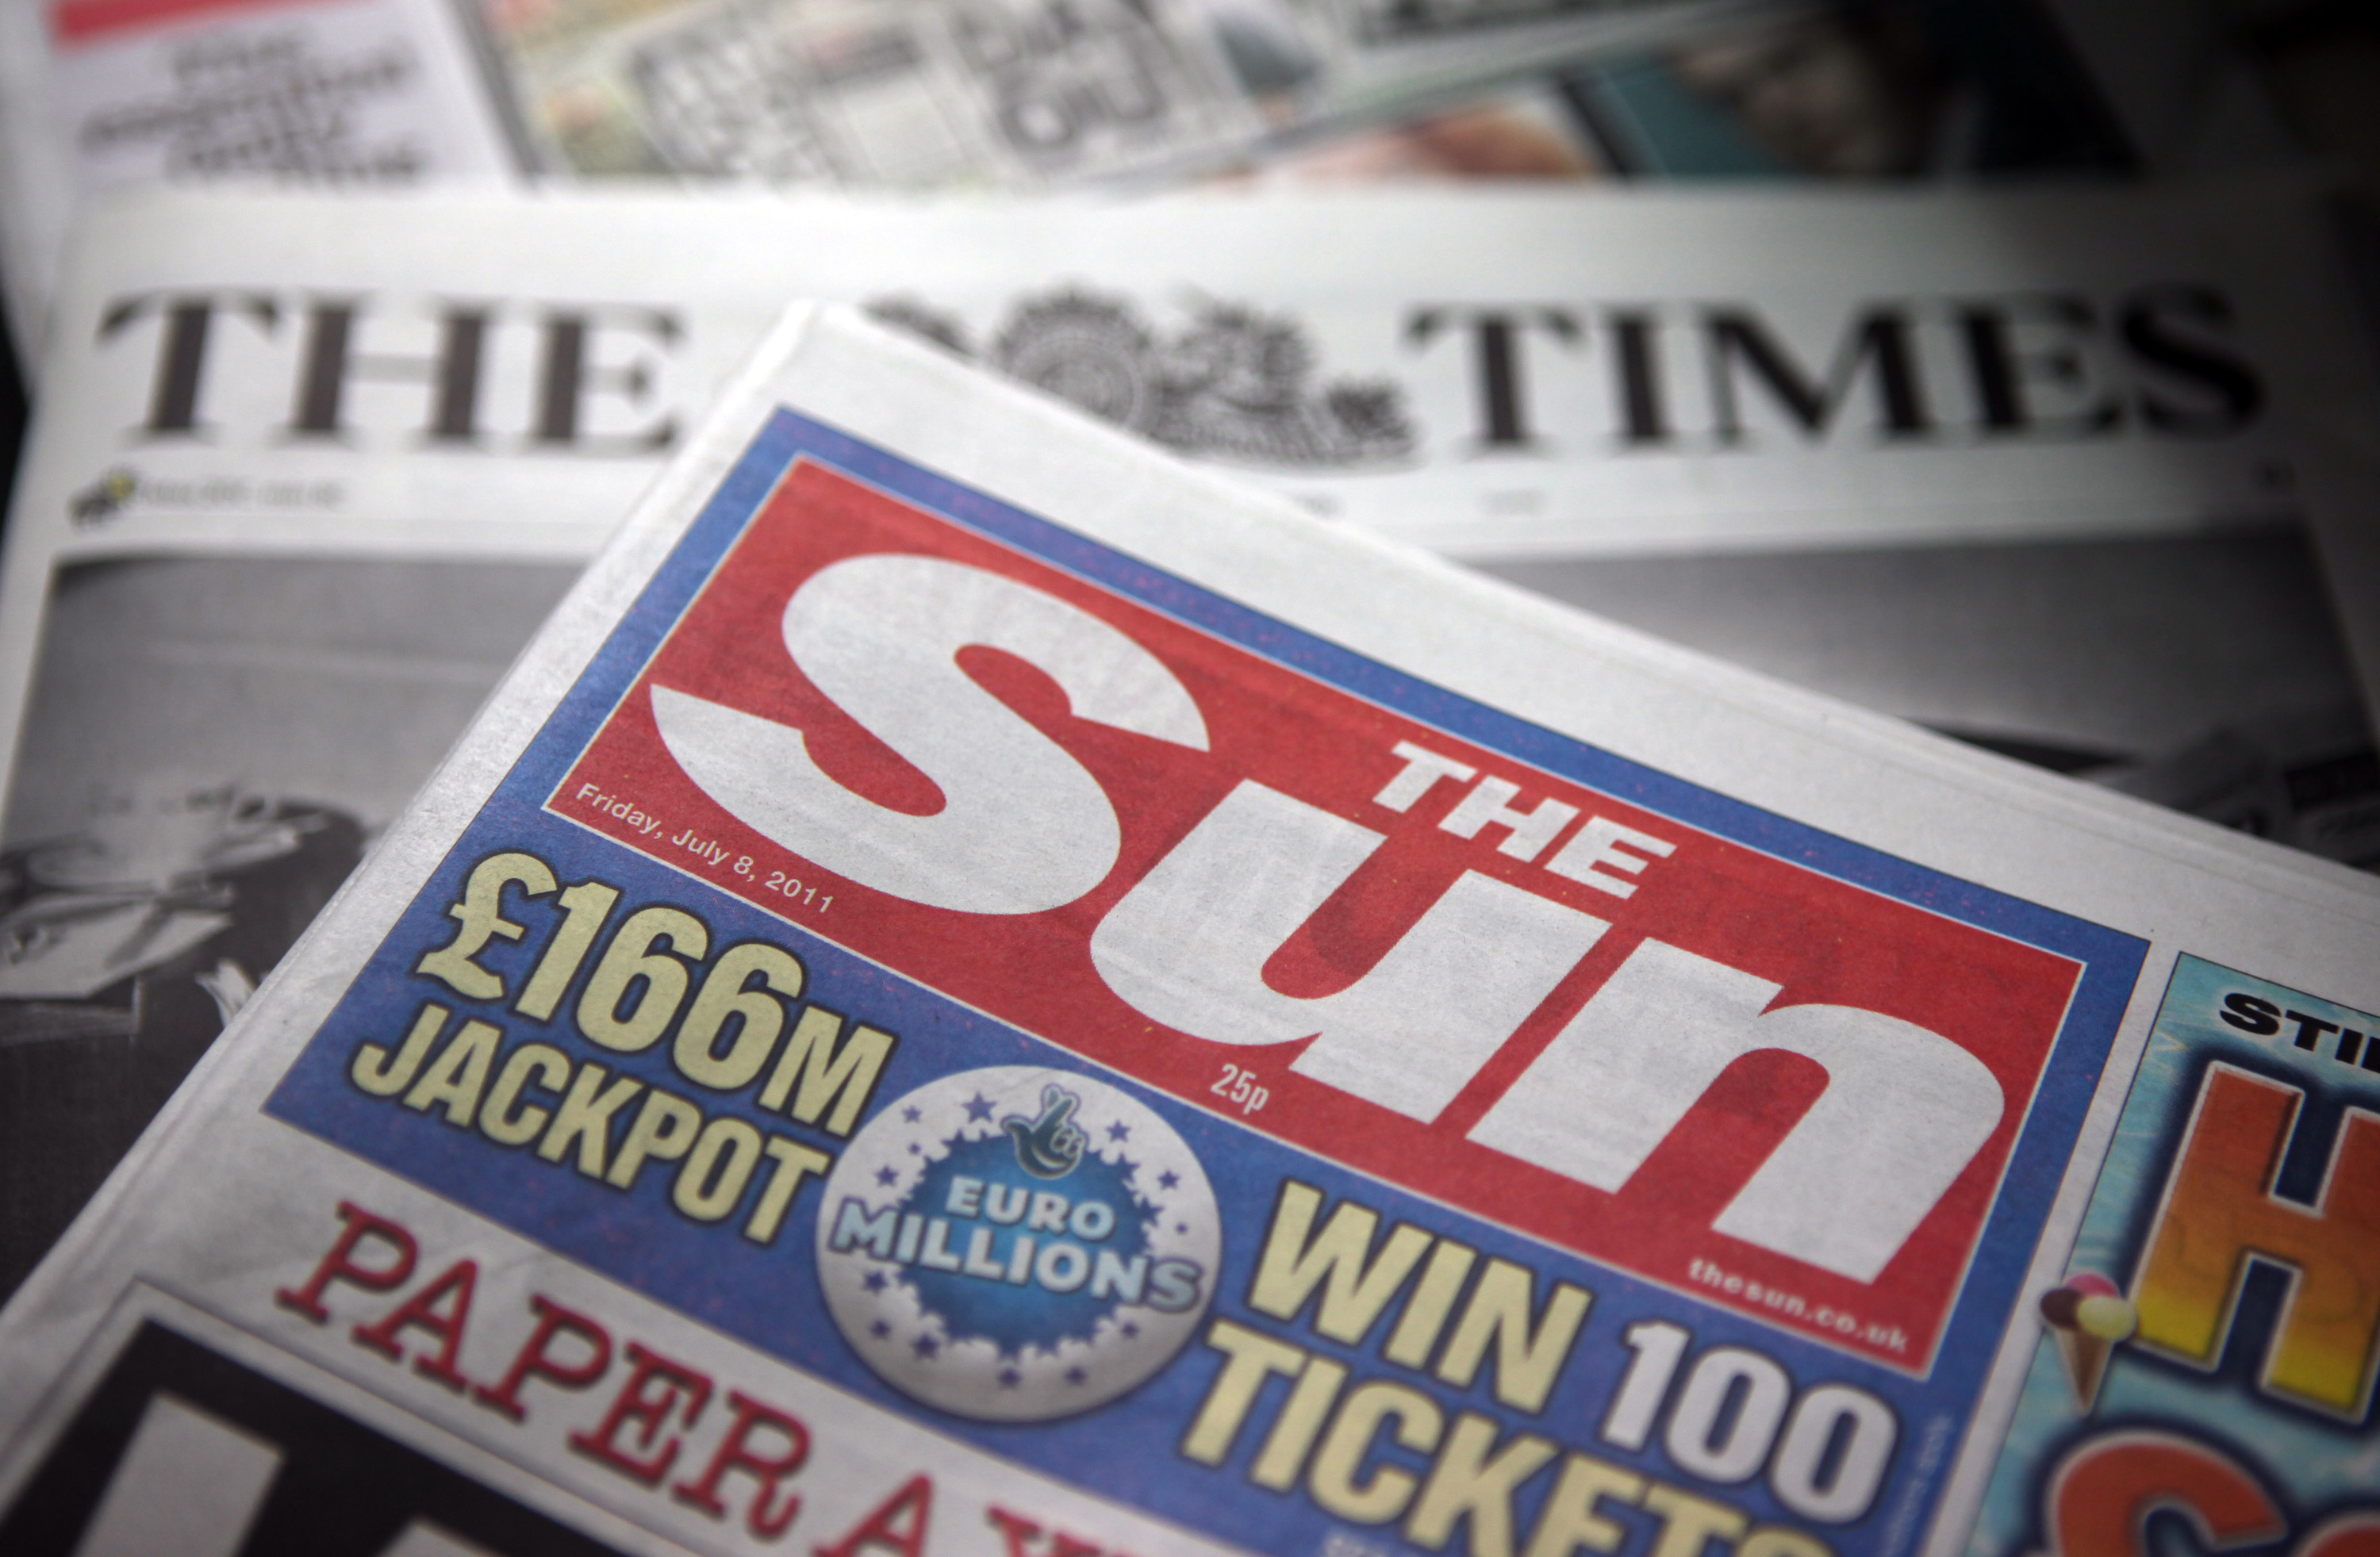 A copy of the Sun and the Times newspapers, published by News International are seen on display at a news agent in London on  July 8, 2011